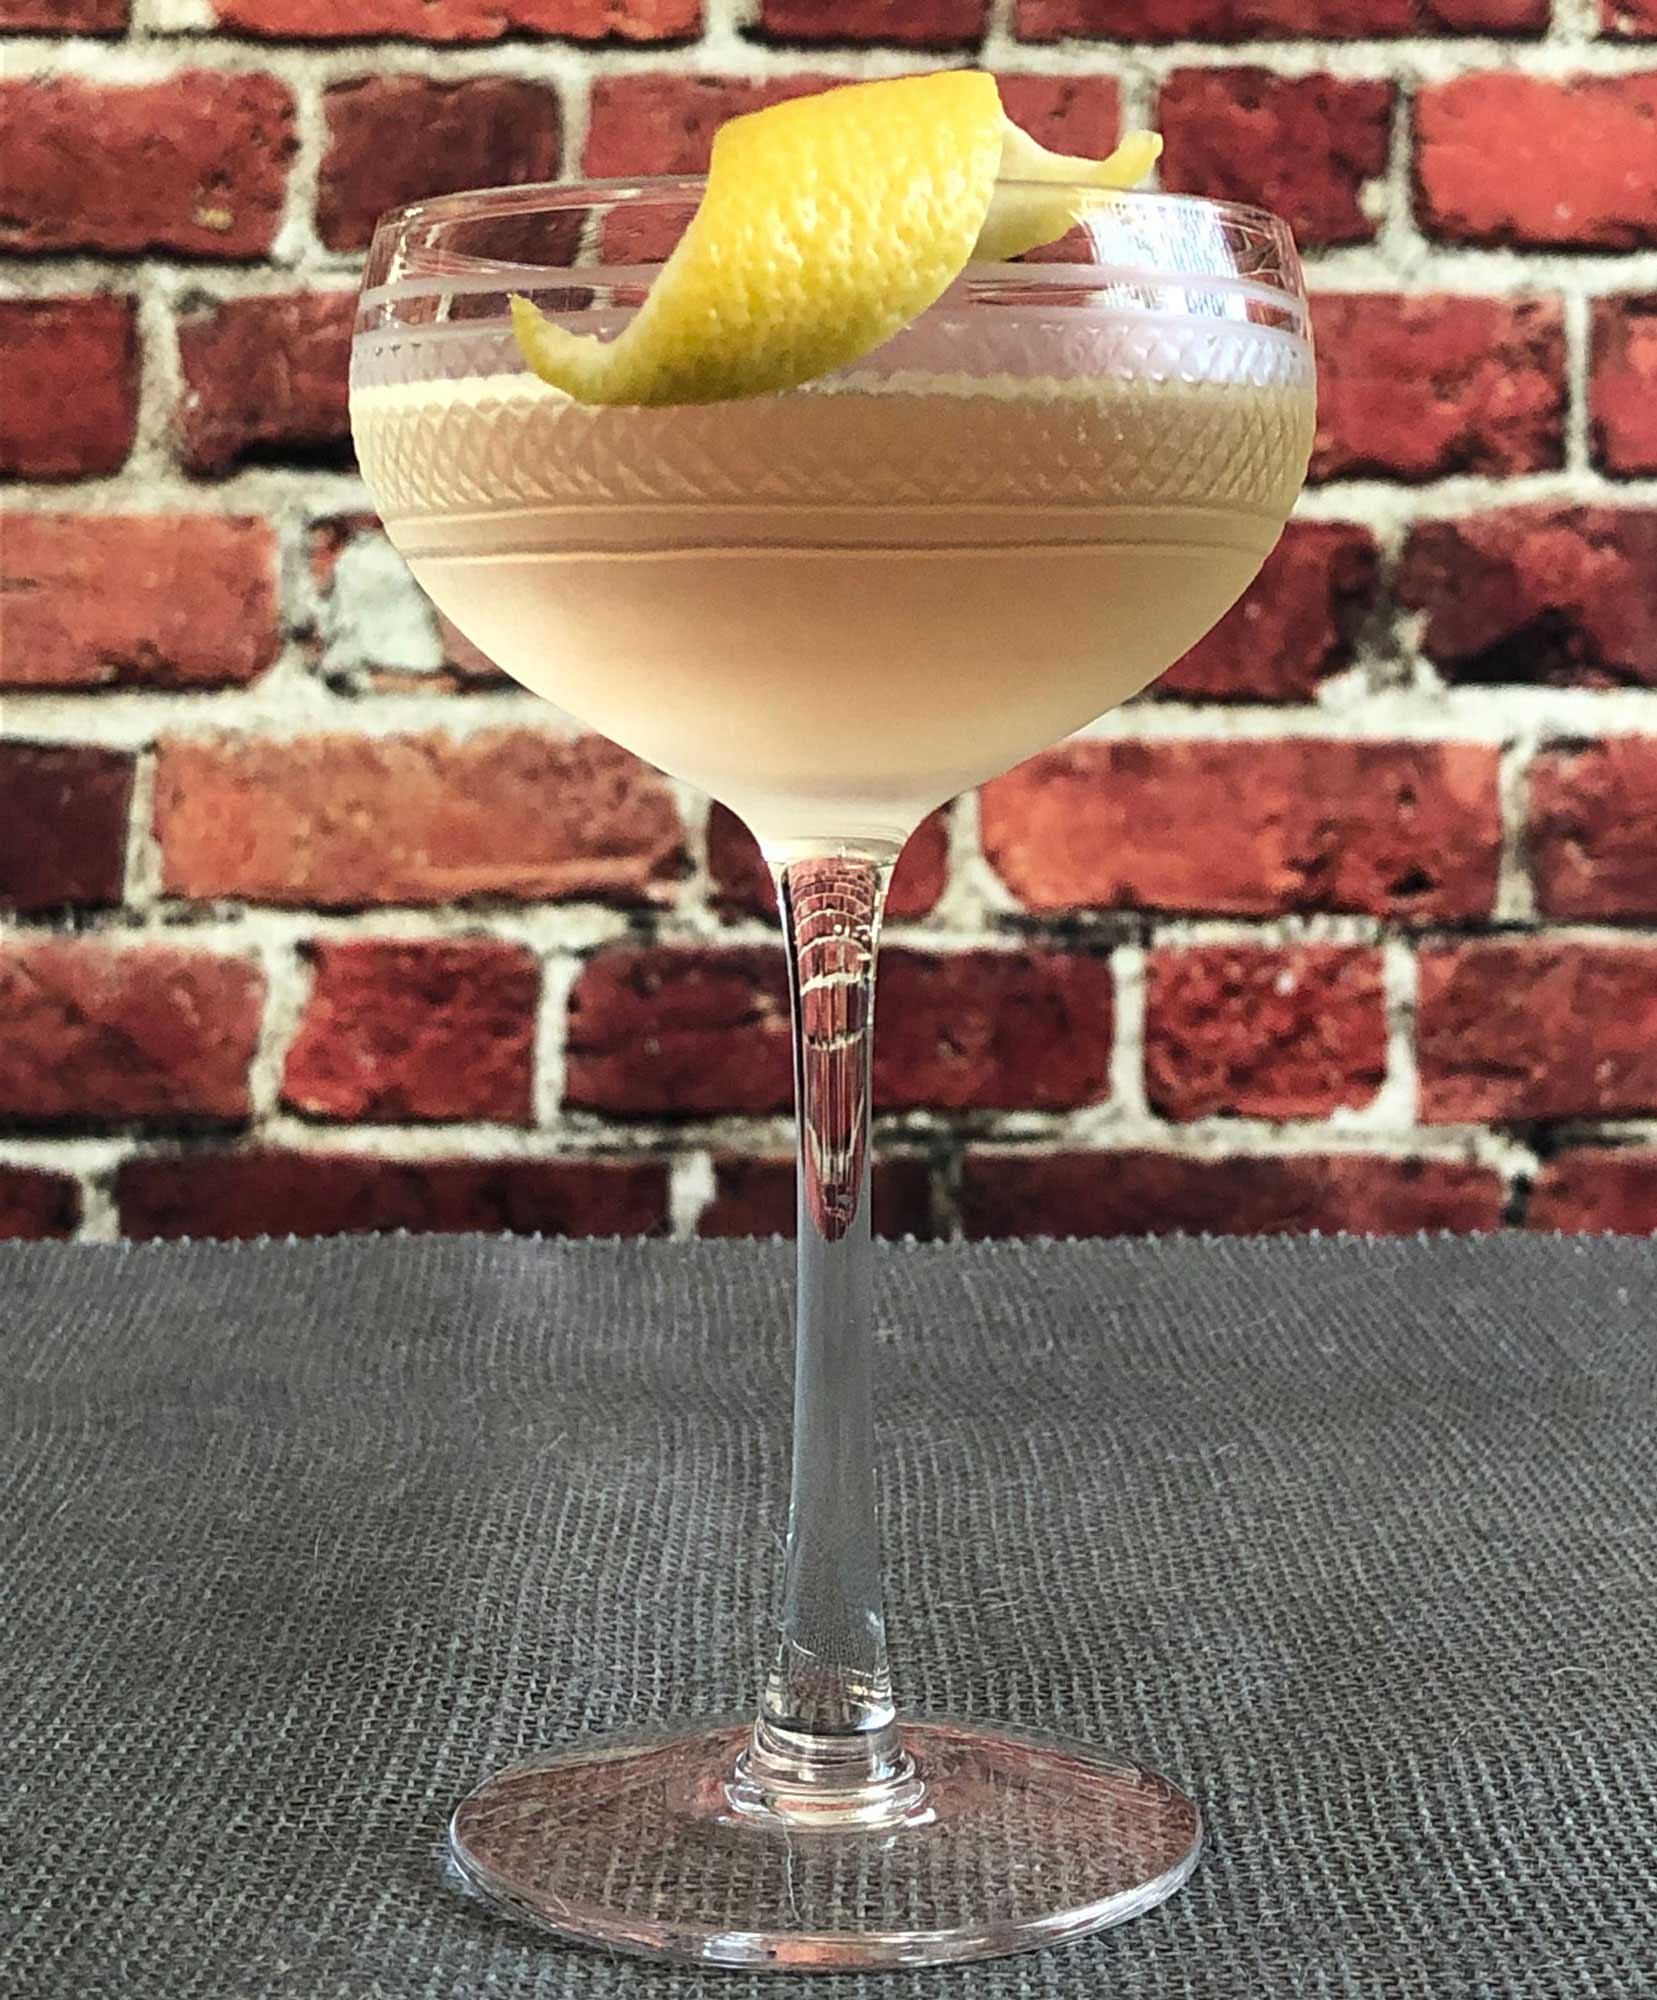 An example of the Eddie Brown, the mixed drink (cocktail), adapted from the Savoy Cocktail Book, featuring Hayman's Old Tom Gin, Cocchi Americano Bianco, Blume Marillen Apricot Eau-de-Vie, and simple syrup; photo by Lee Edwards